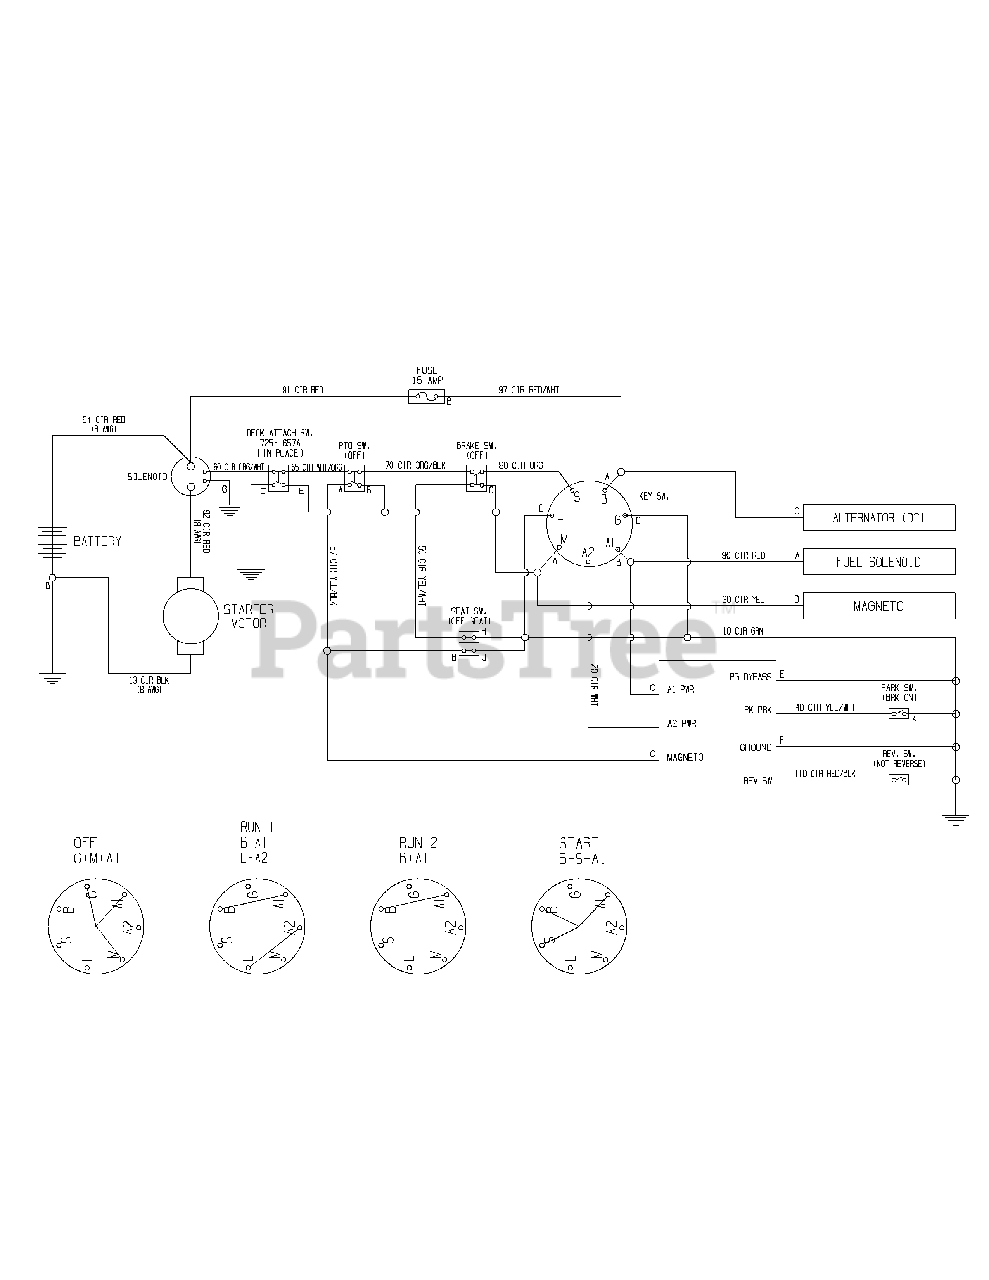 Wiring Diagram For Troy Bilt Riding Mower from www.partstree.com